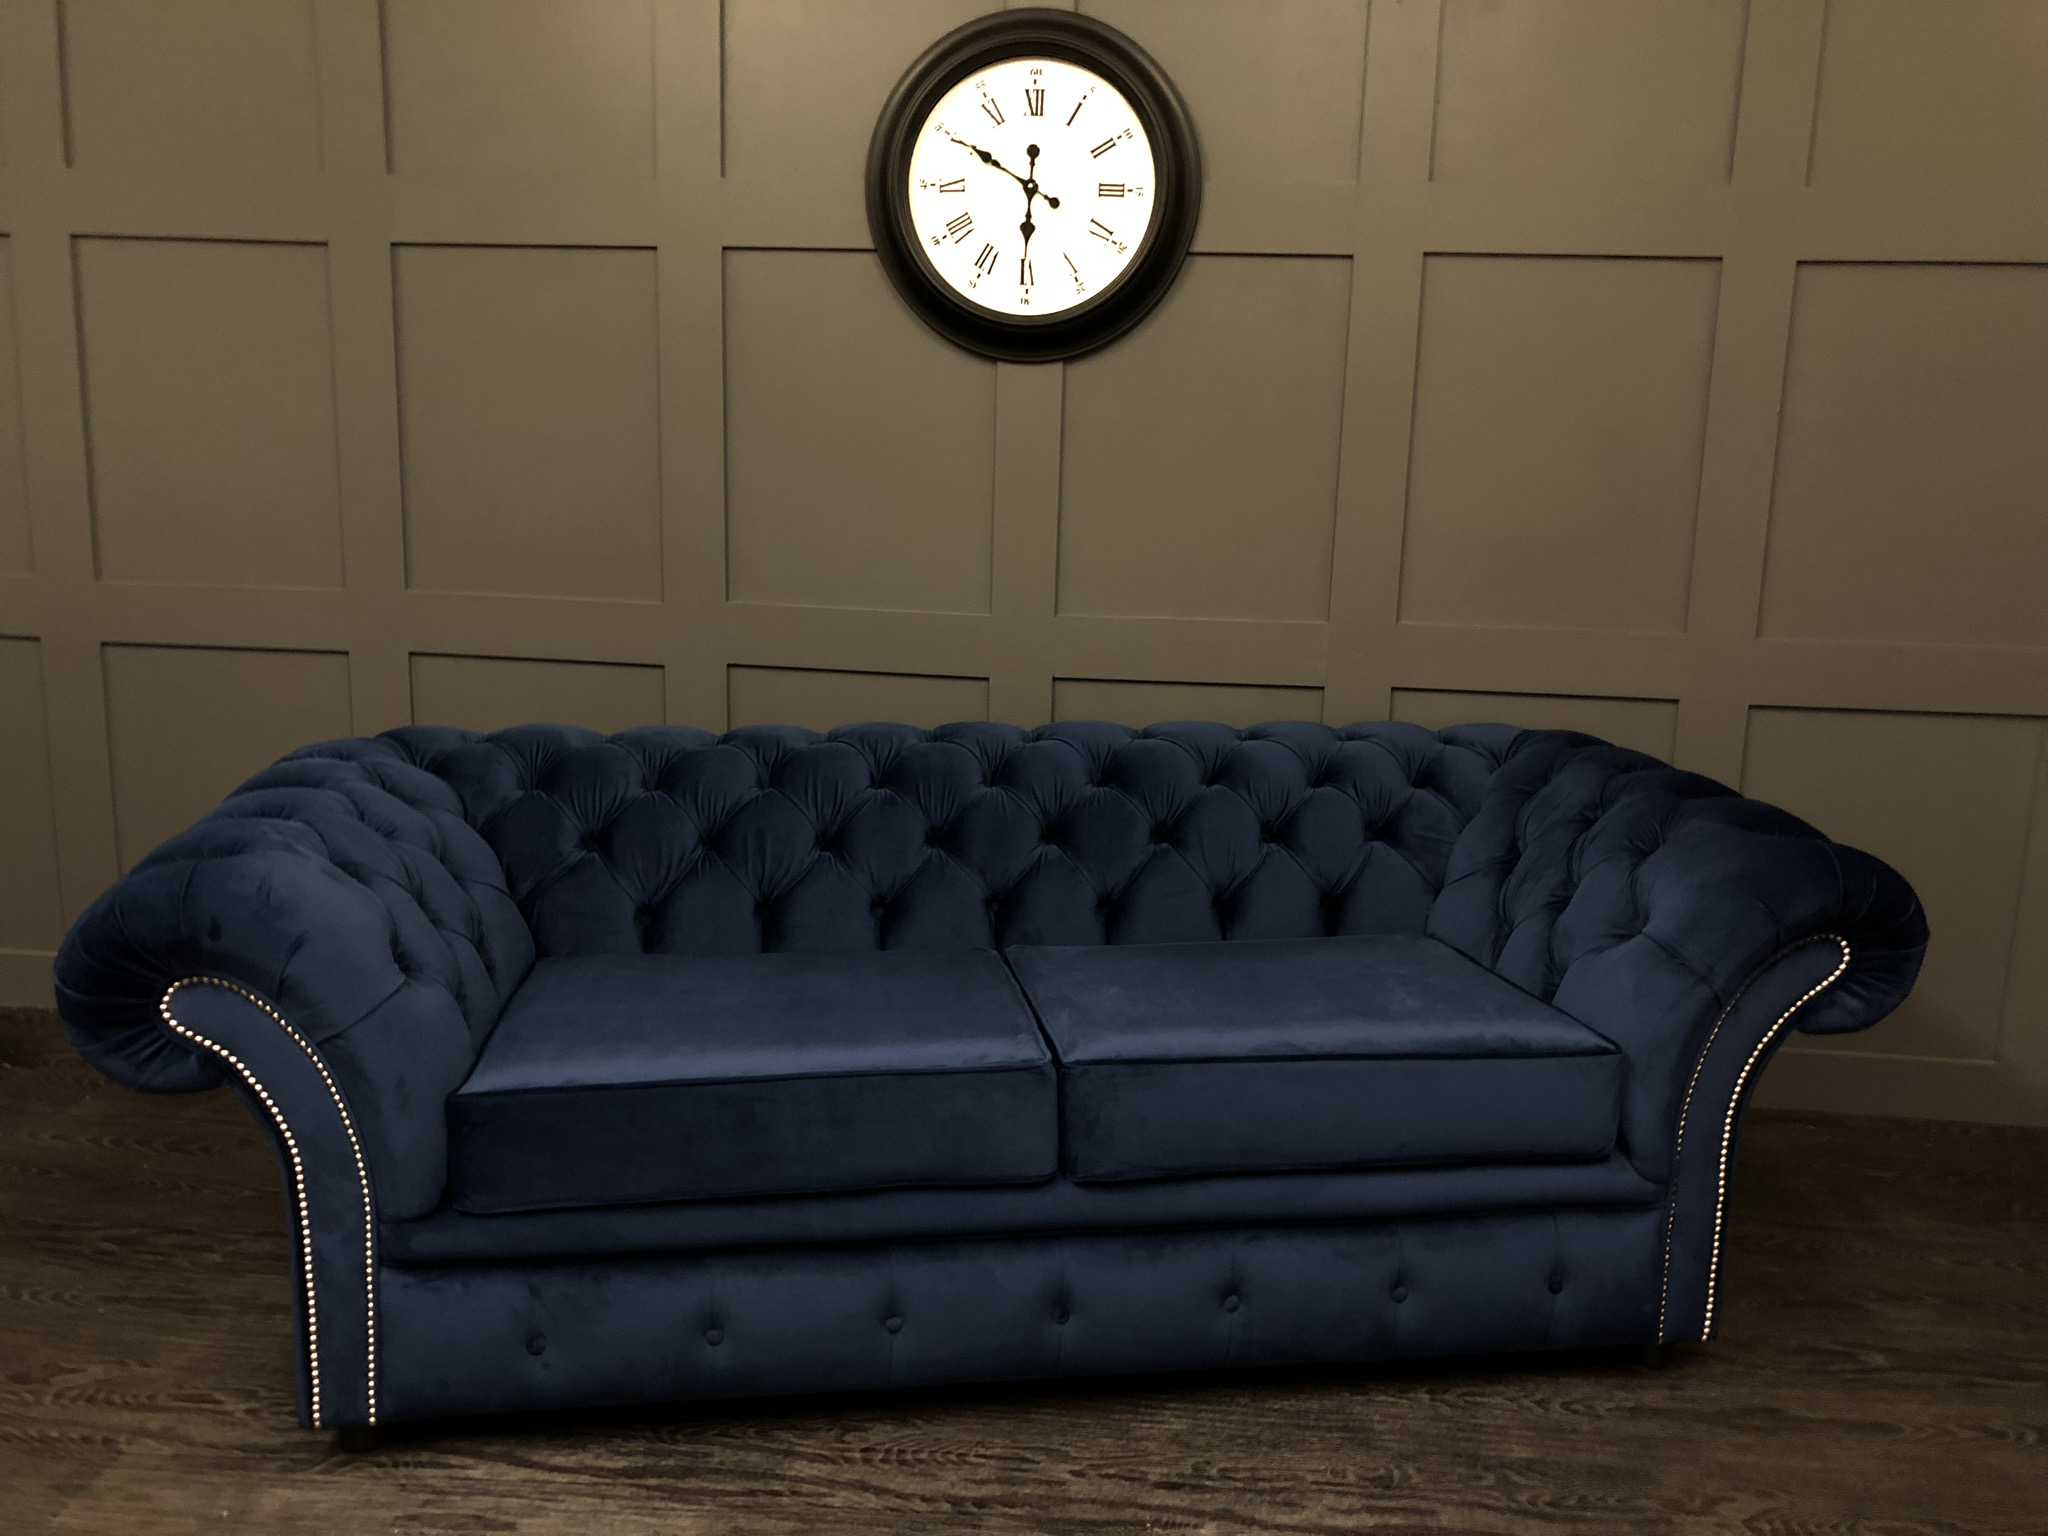 London 2 seat sofa bed cambio royal plush velvet